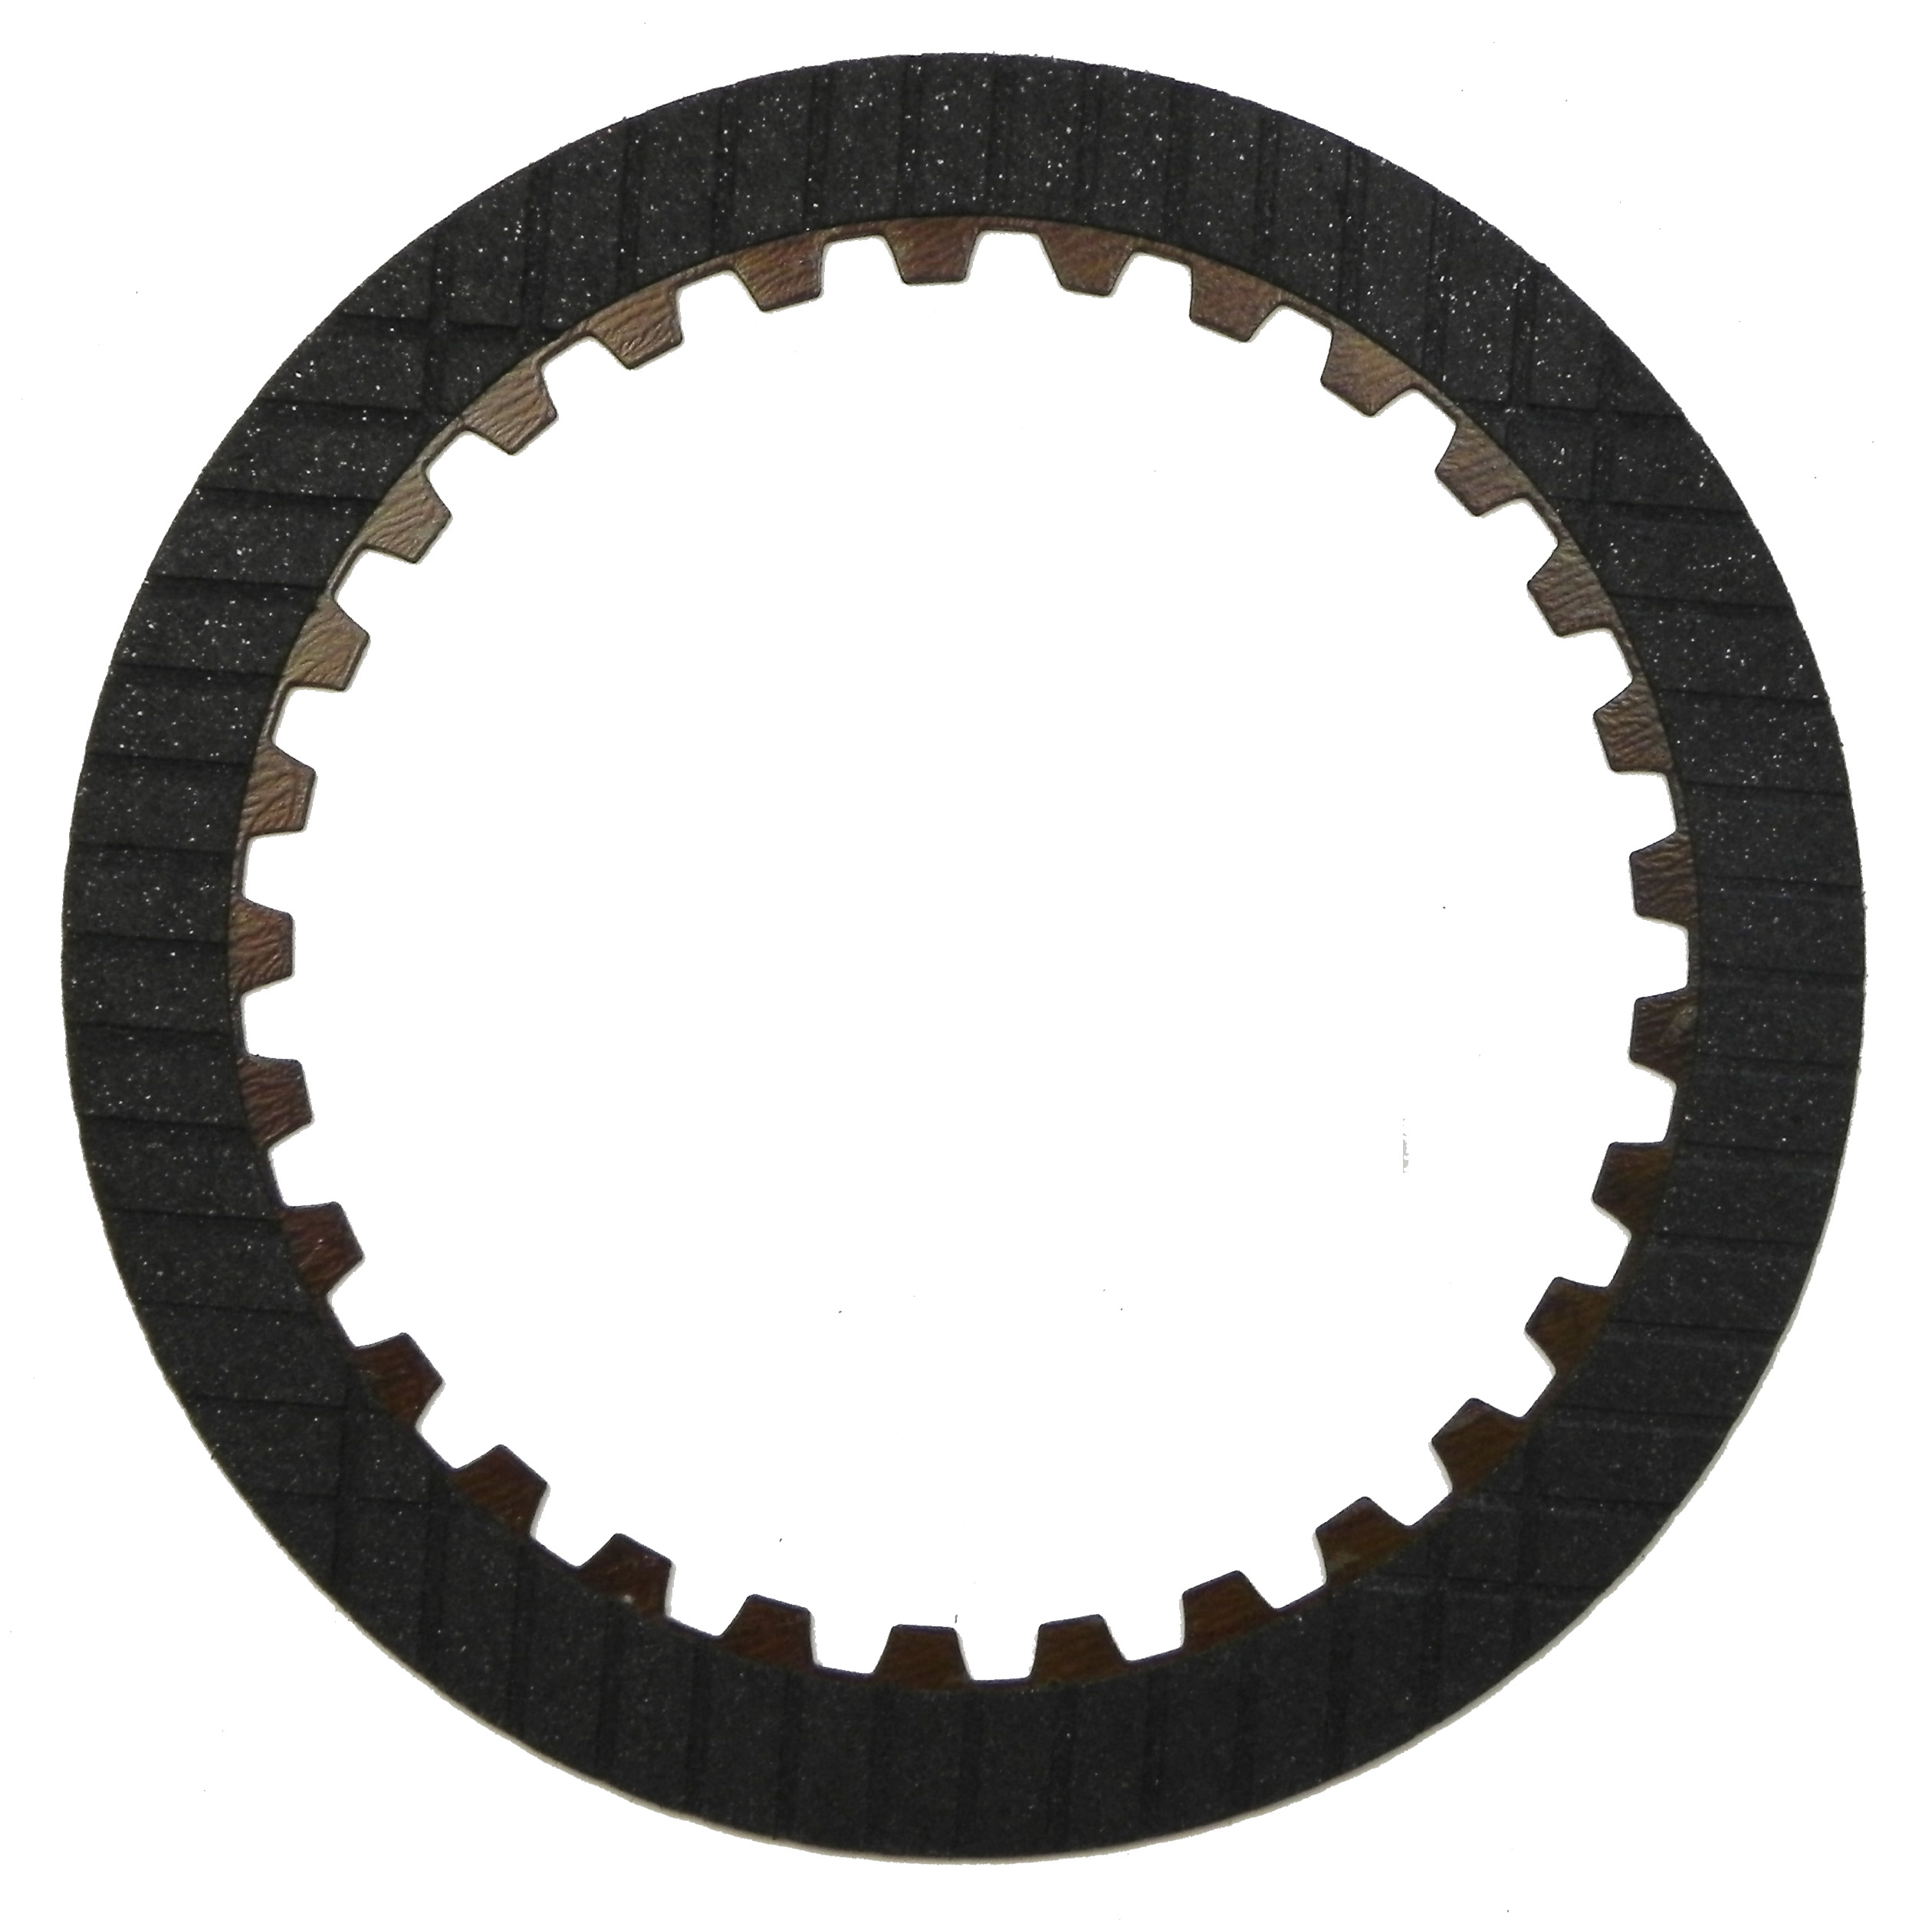 R558270 | 2007-ON Friction Clutch Plate High Energy Underdrive Direct, Single Sided, ID Spline High Energy